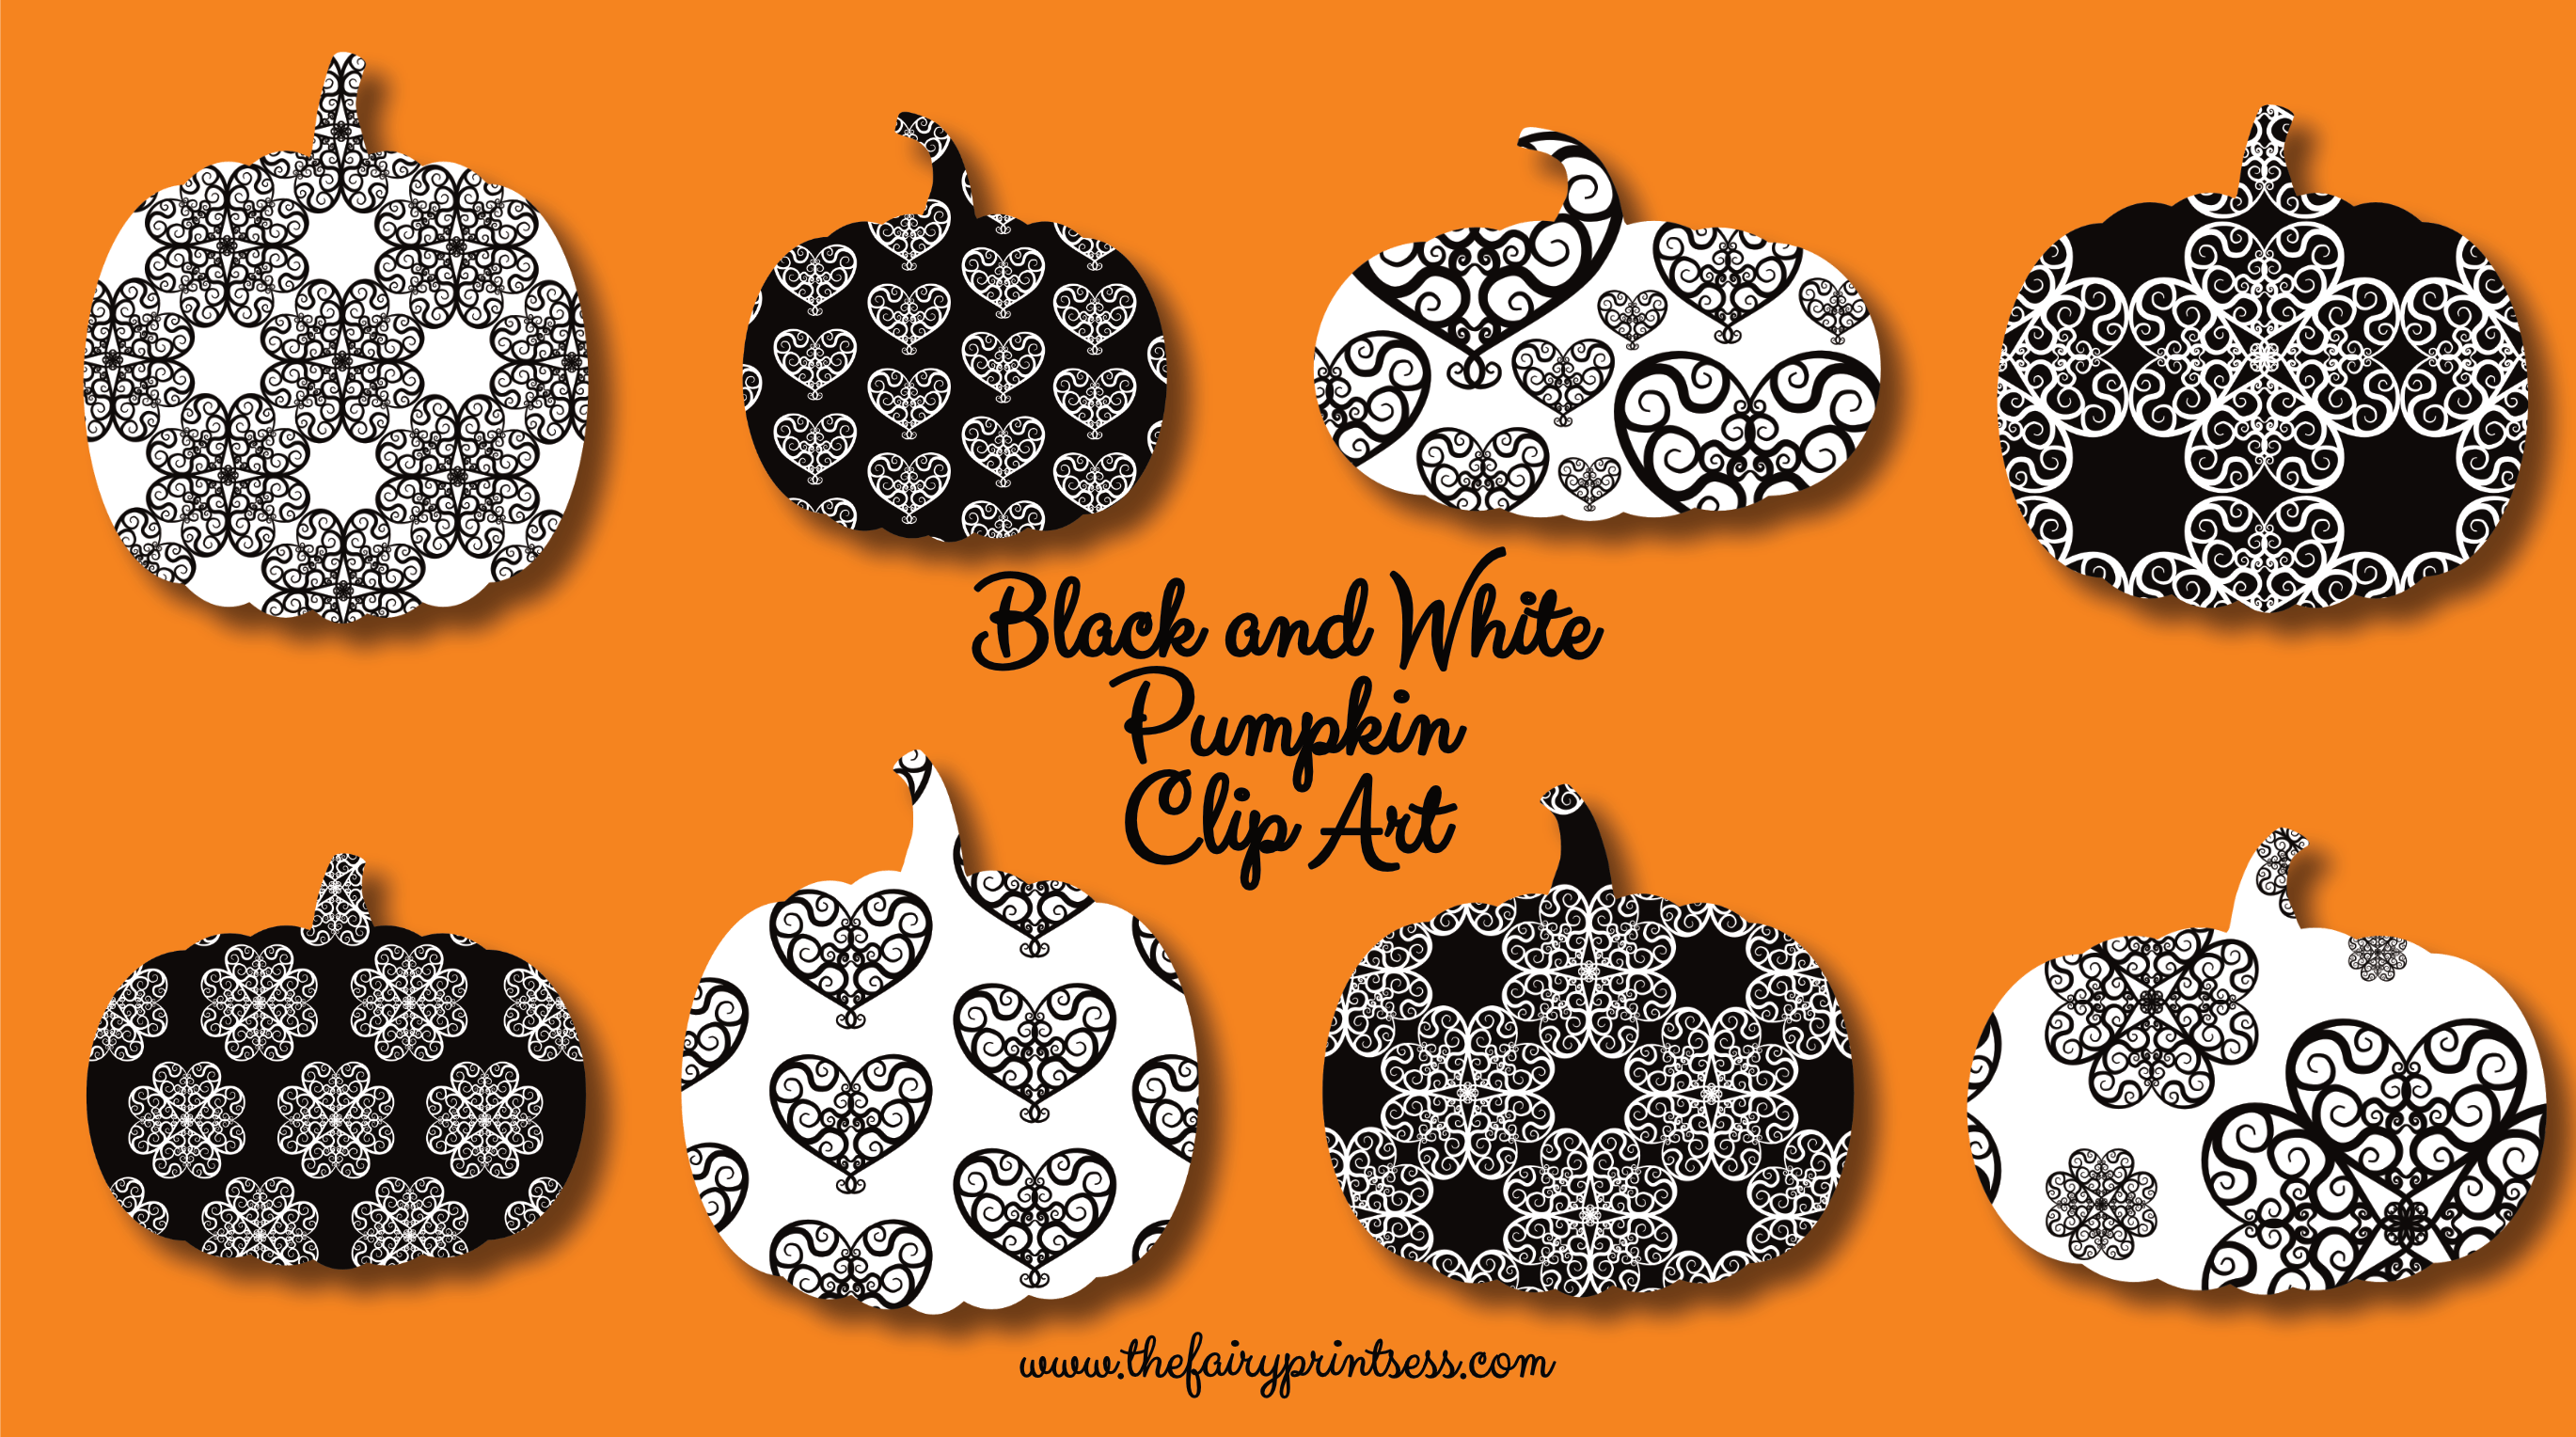 White pumpkin floral clipart graphic black and white stock Black and White Pumpkin Clip Art - Fancy Flourishes! graphic black and white stock